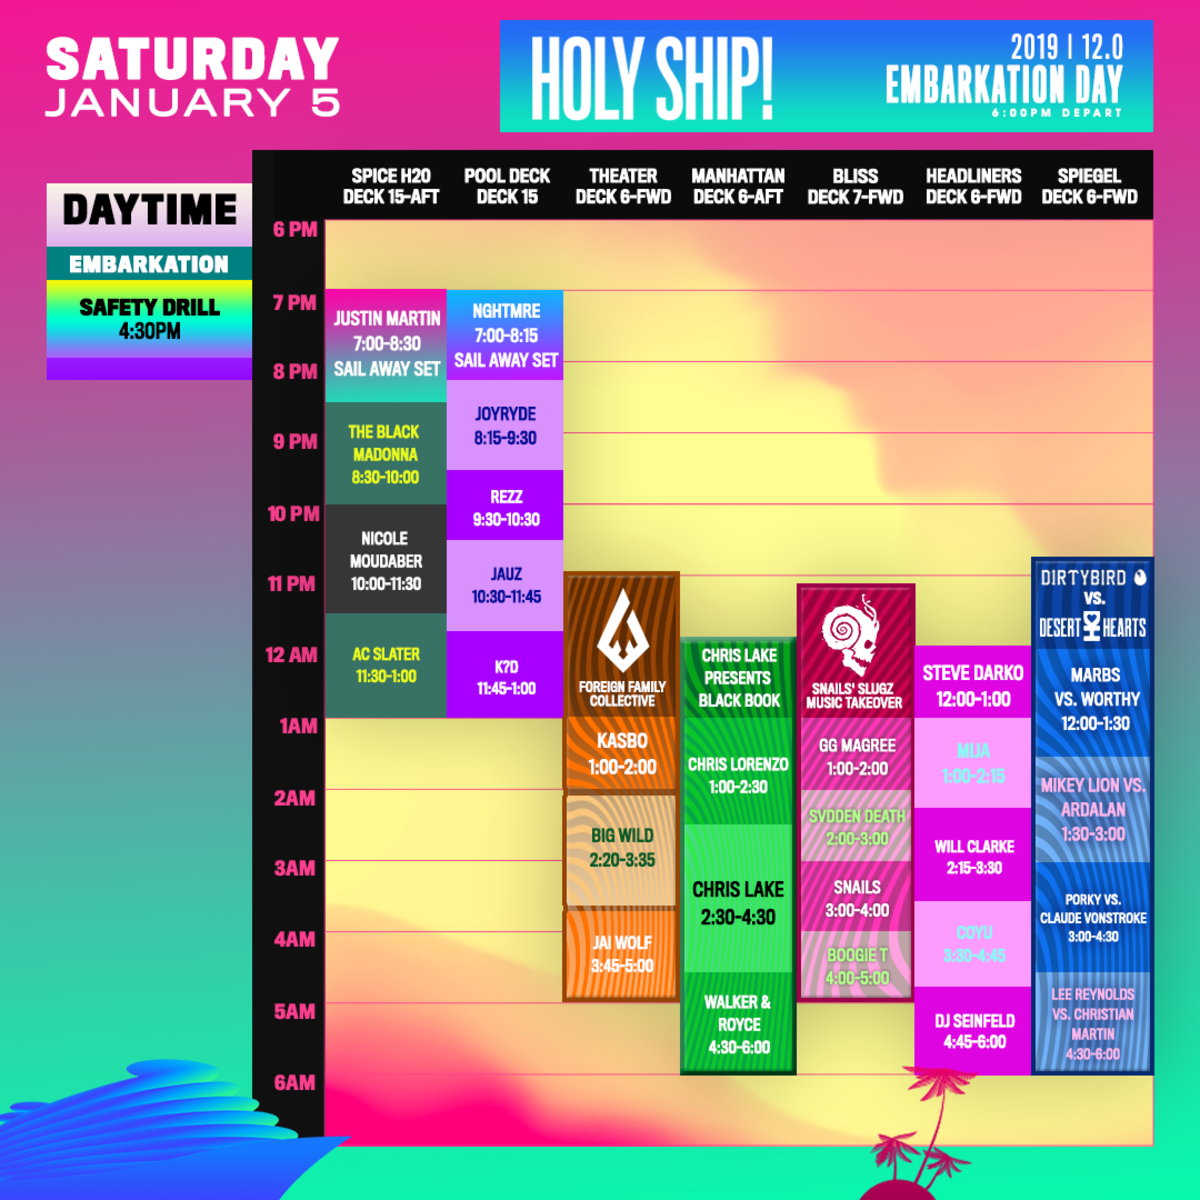 holy_ship_2019_lu_set_times_social_assets_day_1_12.0_1080x1080_r02